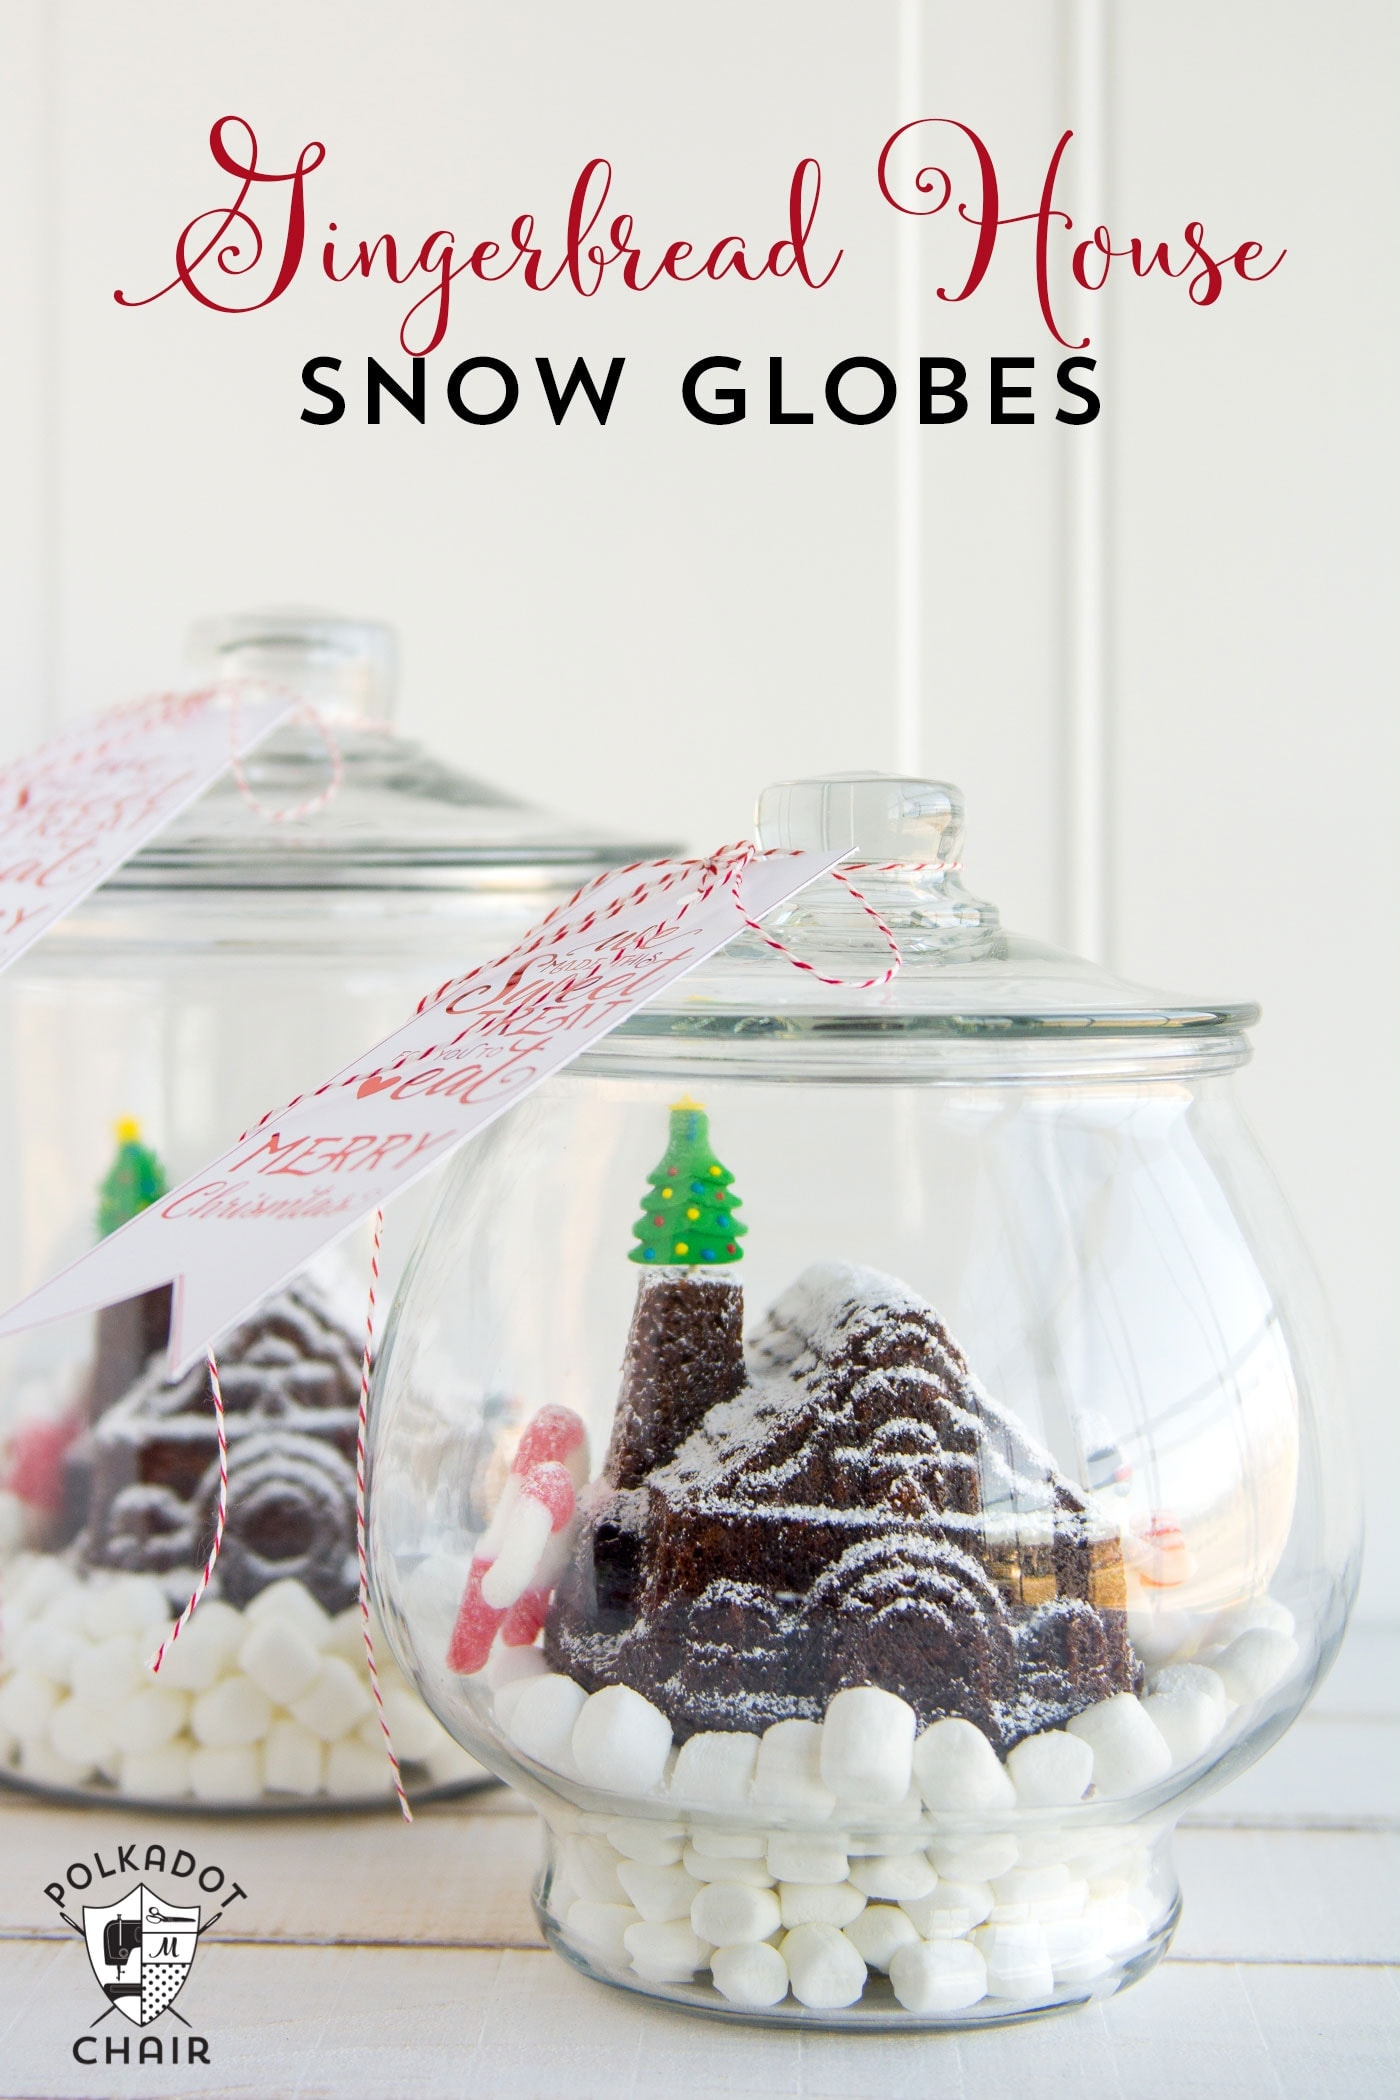 Cute idea for friend and neighbor Christmas gifts! A snow globe gingerbread house made with a simple mold. Post includes a link to the free printable tag.